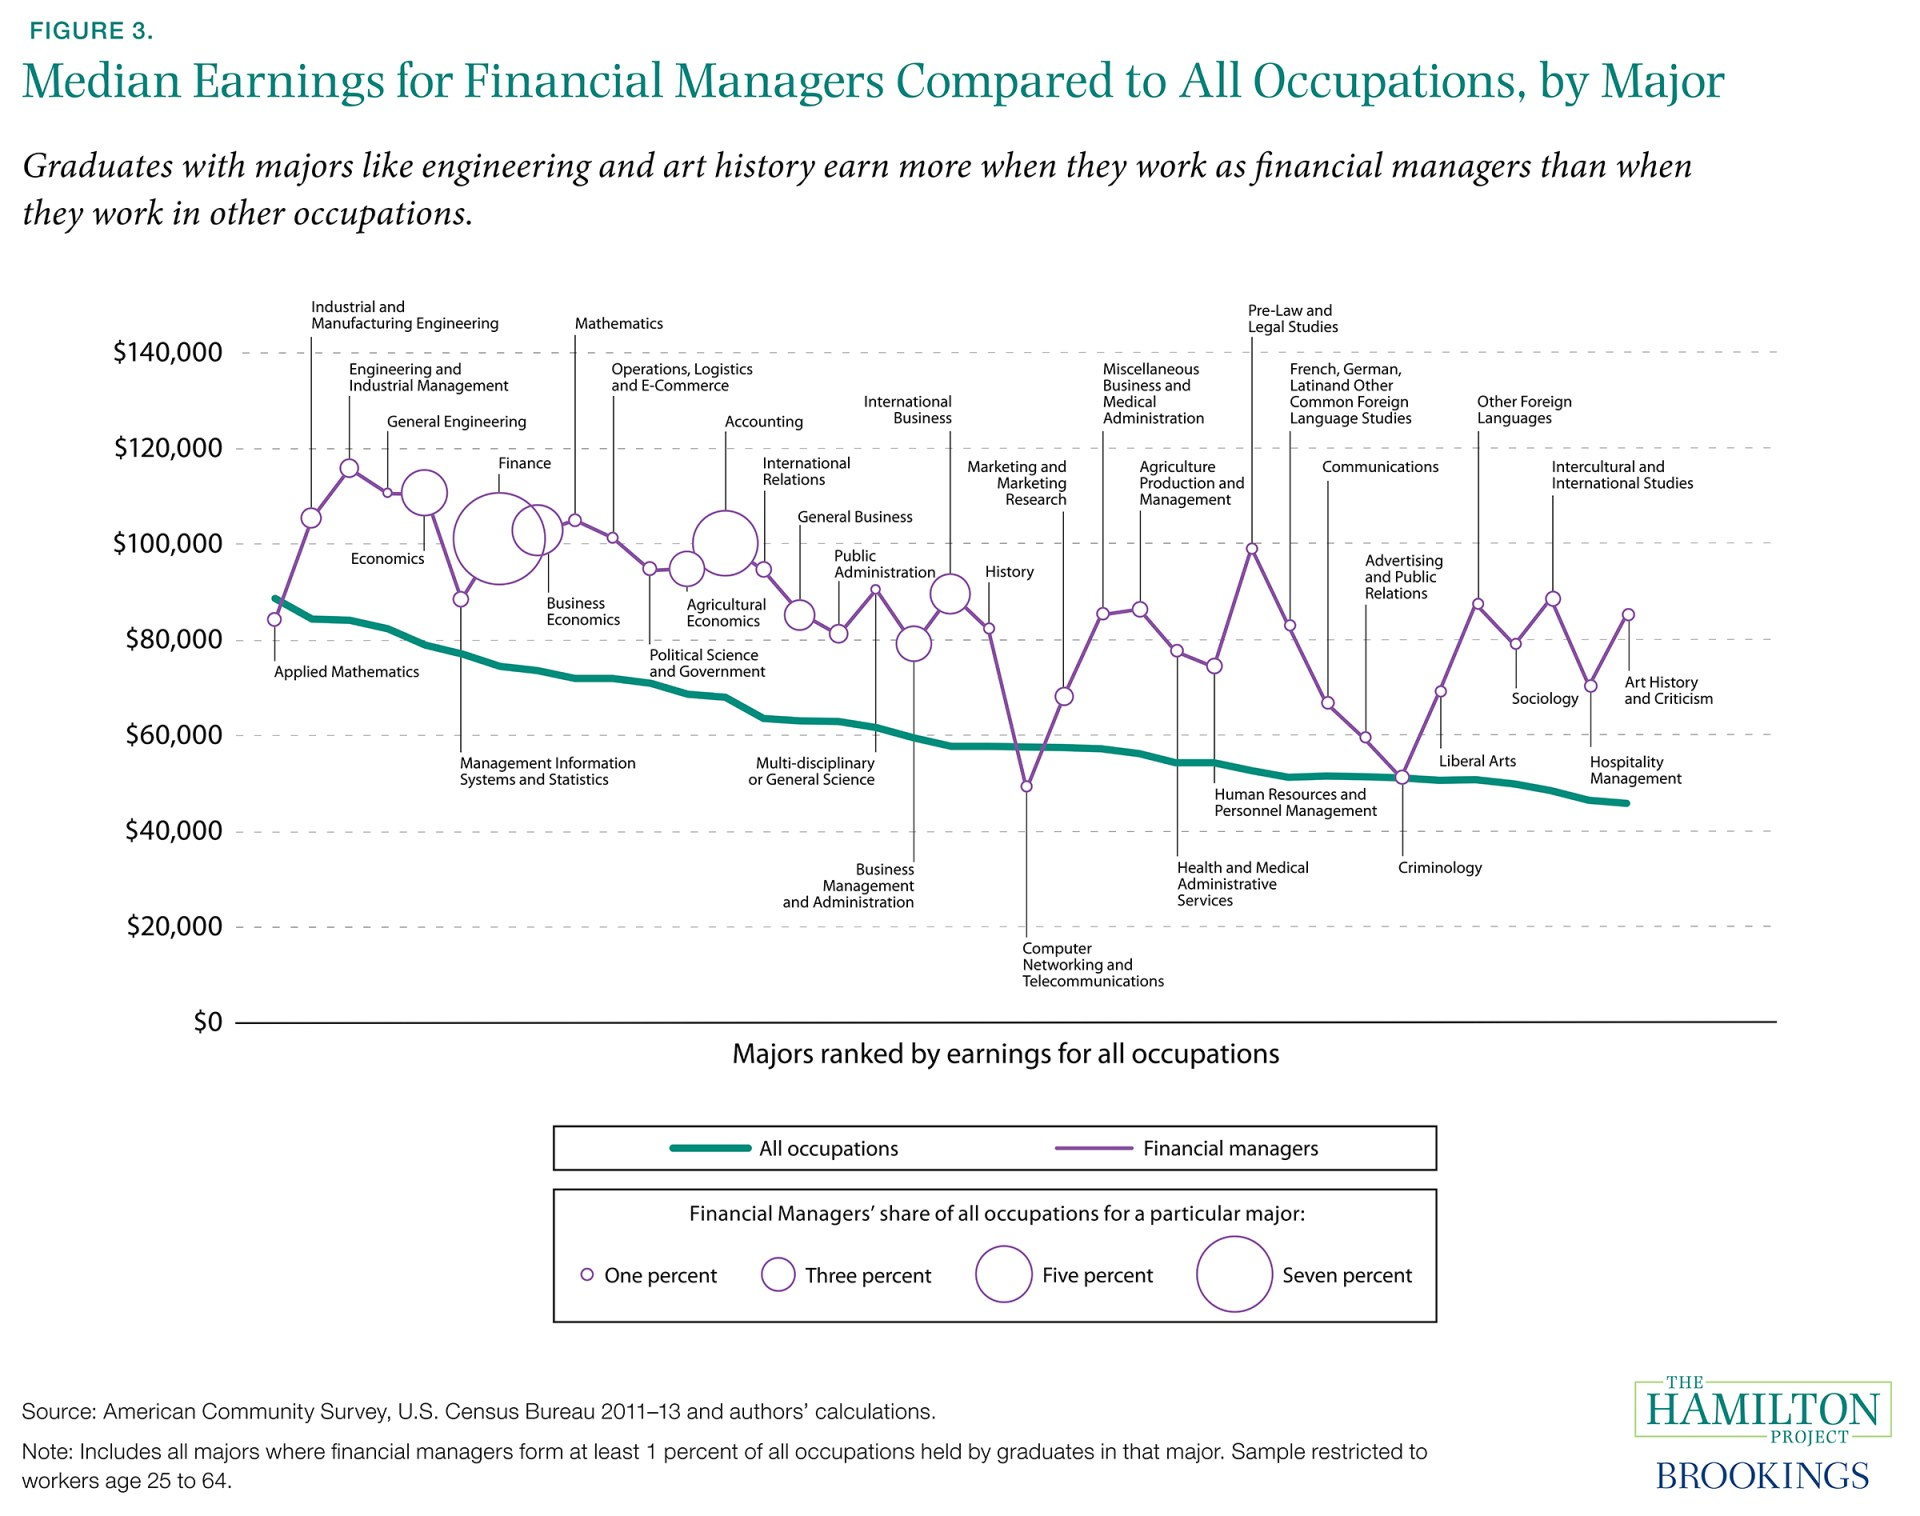 Figure 3. Median Earnings for Financial Managers Compared to All Occupations, by Major